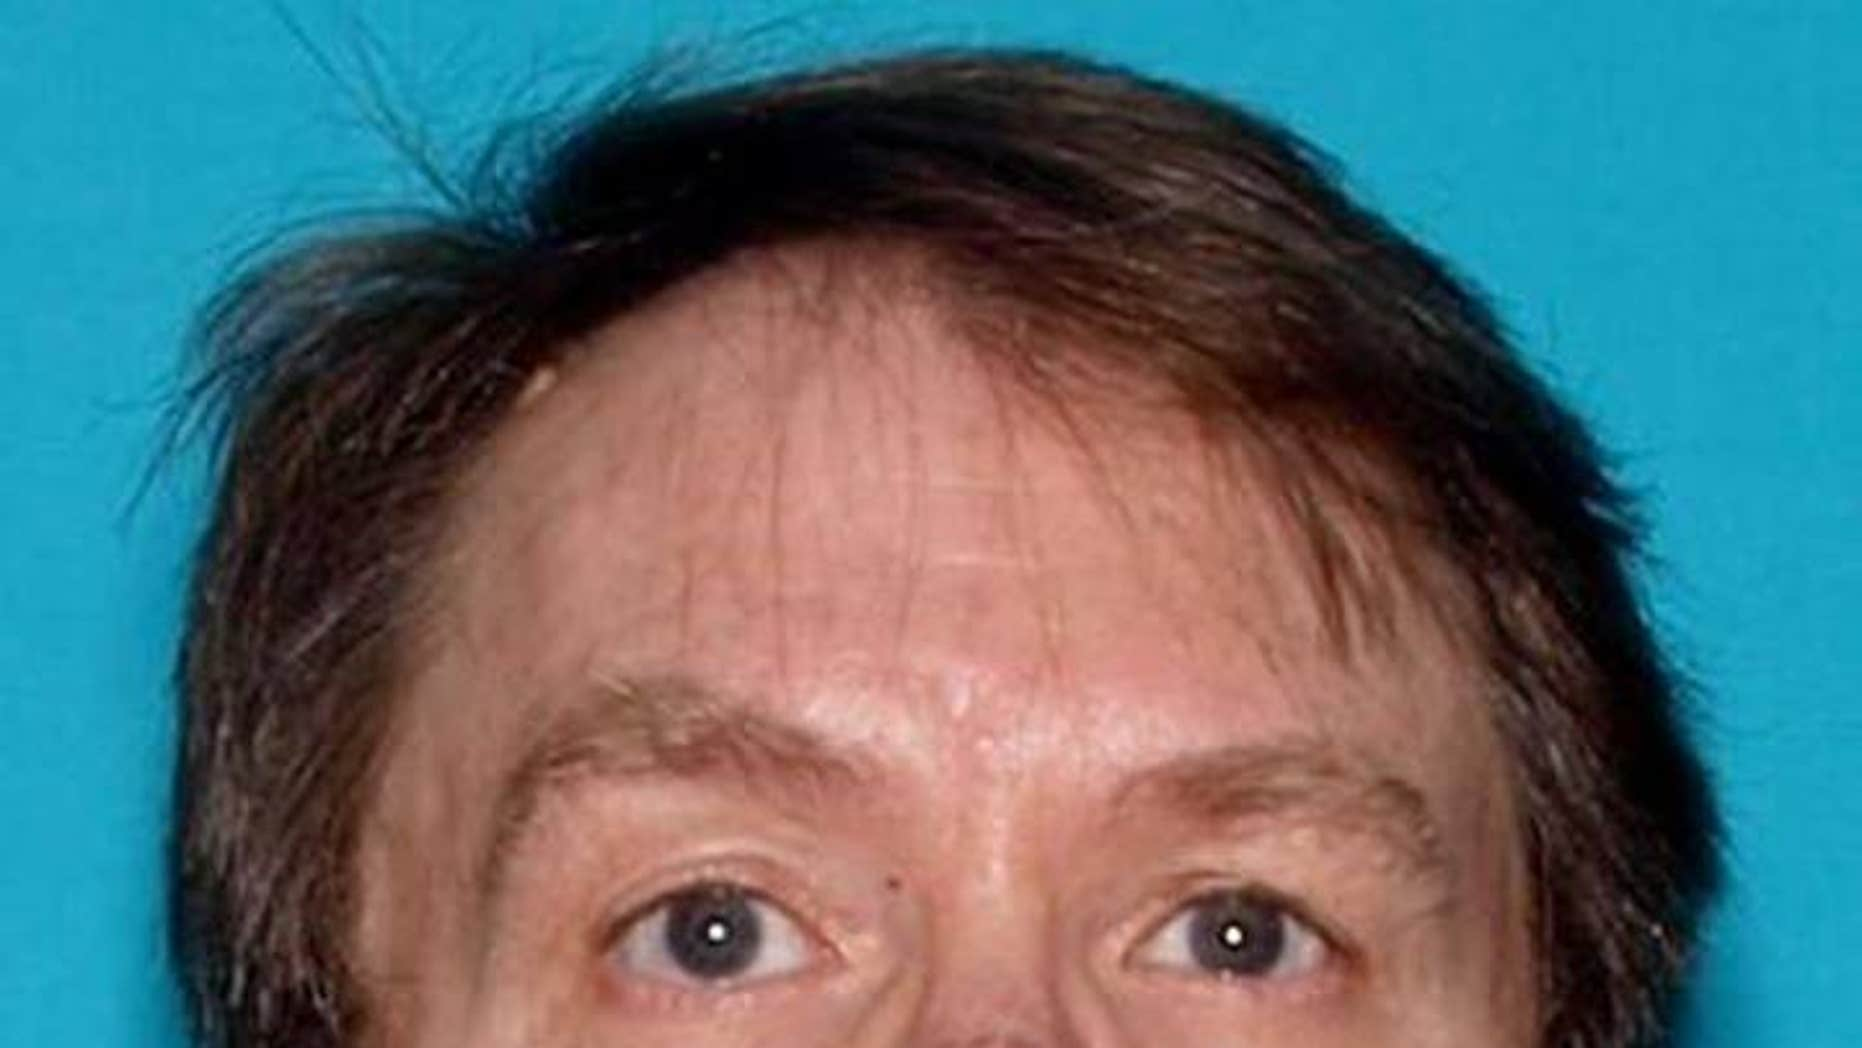 Kenneth Rasmuson is pictured here in a photo from Idaho state police's Sex Offender Registry.